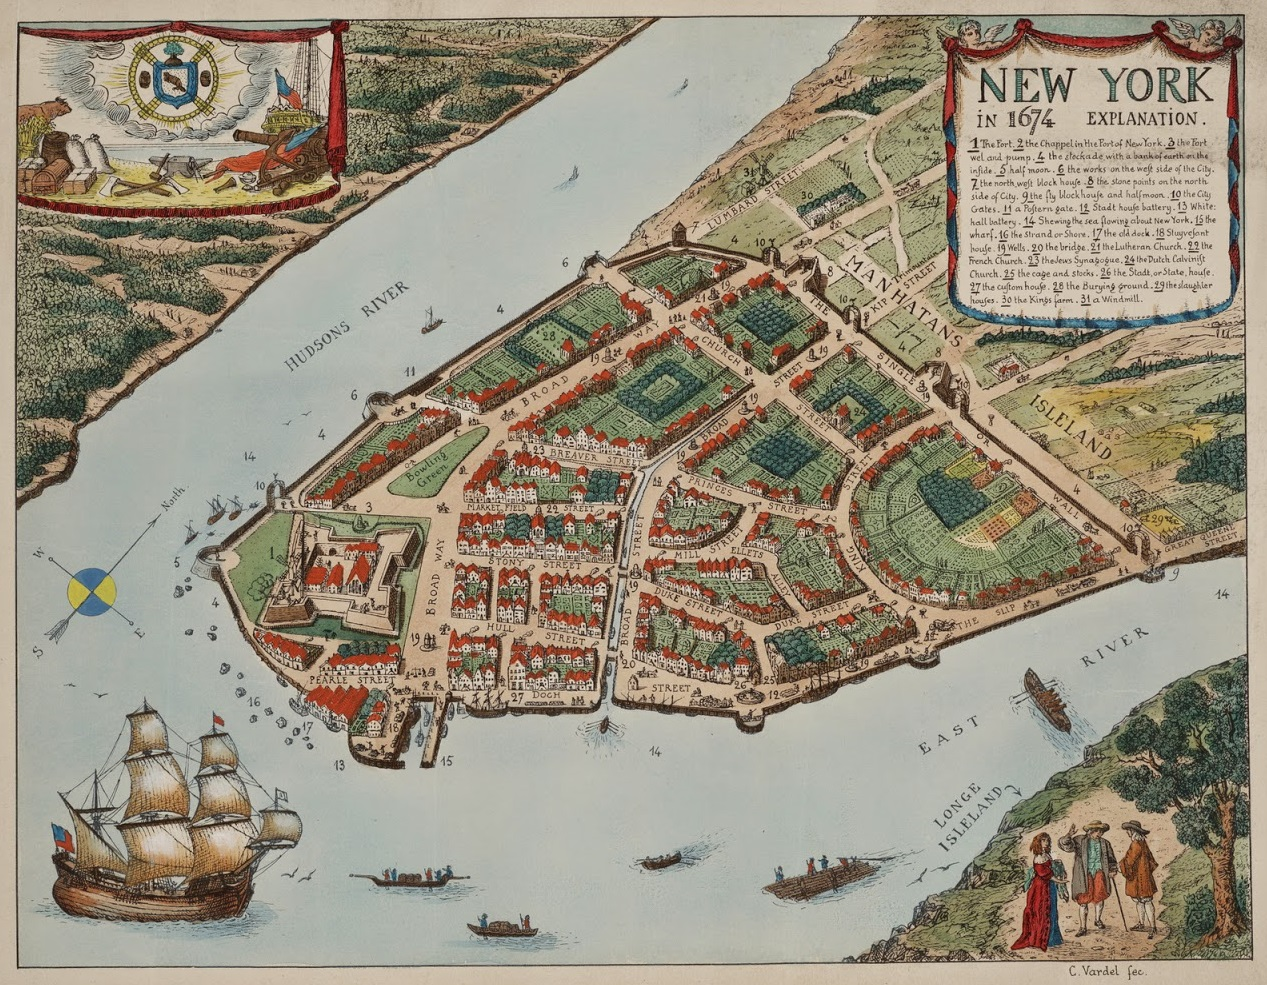 Sylvia Lande Notes Map of New York City in 1674